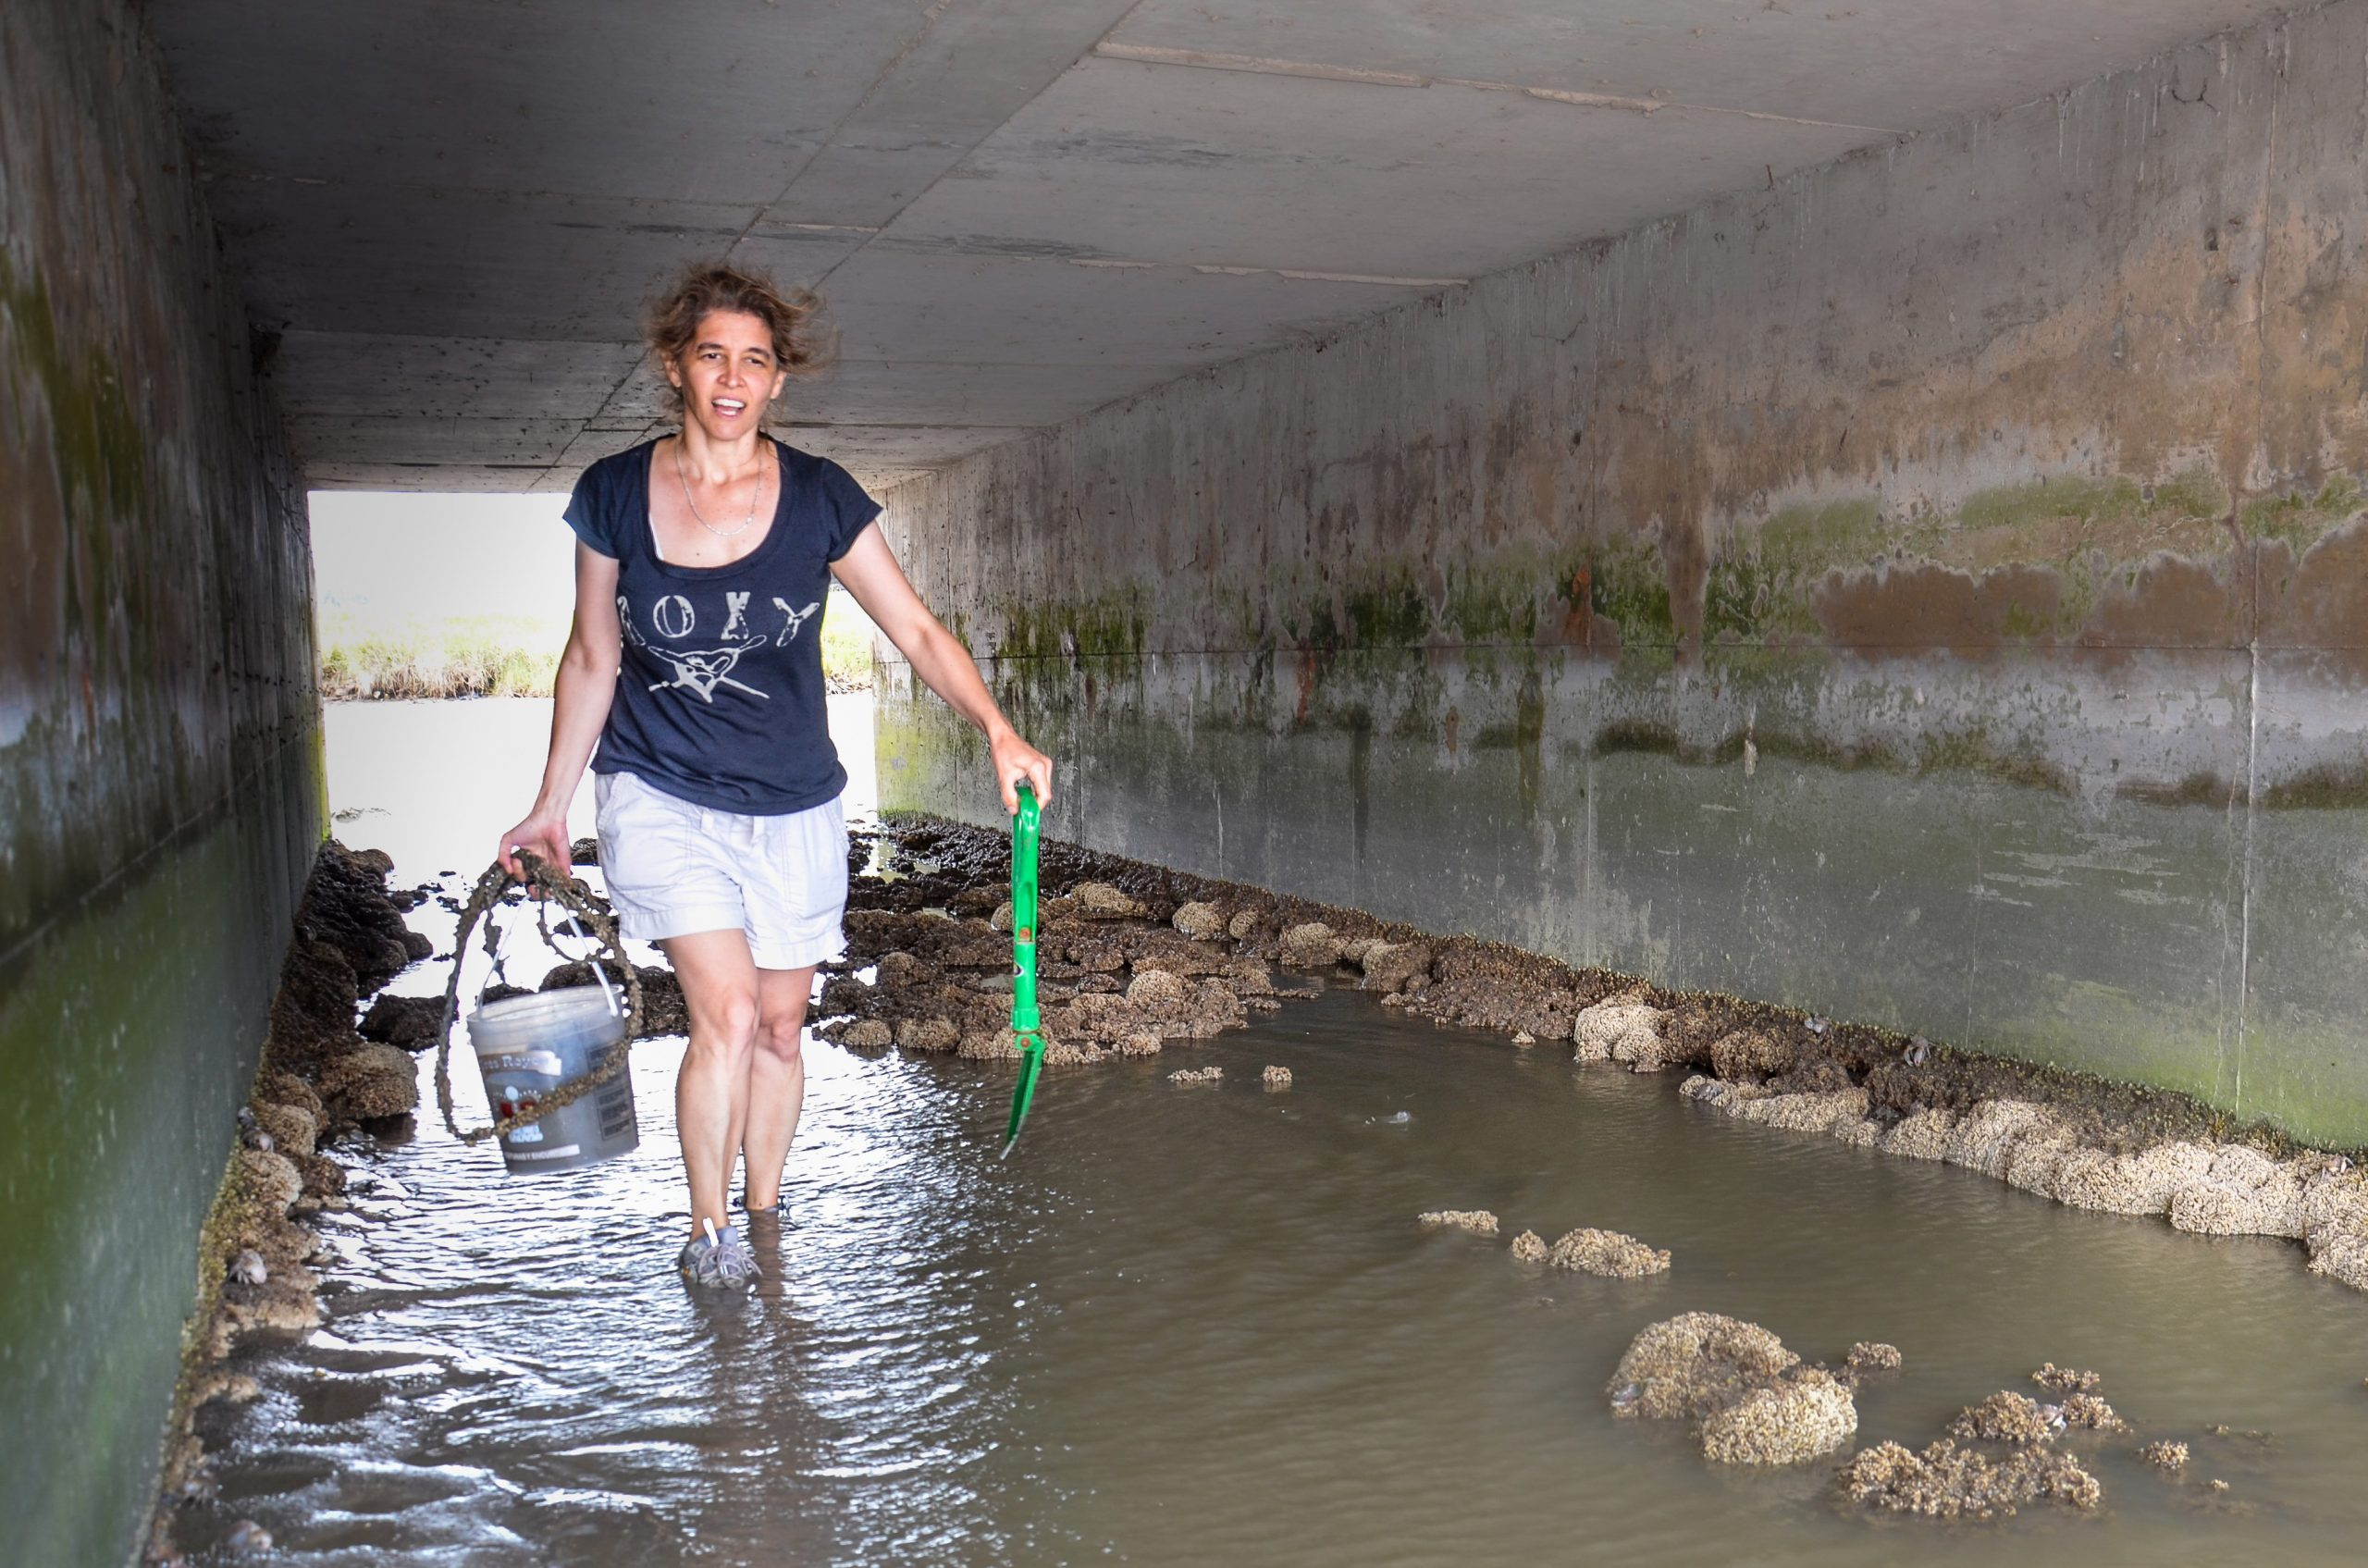 A woman in a blue shirt and white shorts walking through a tunnel with ankle high water.